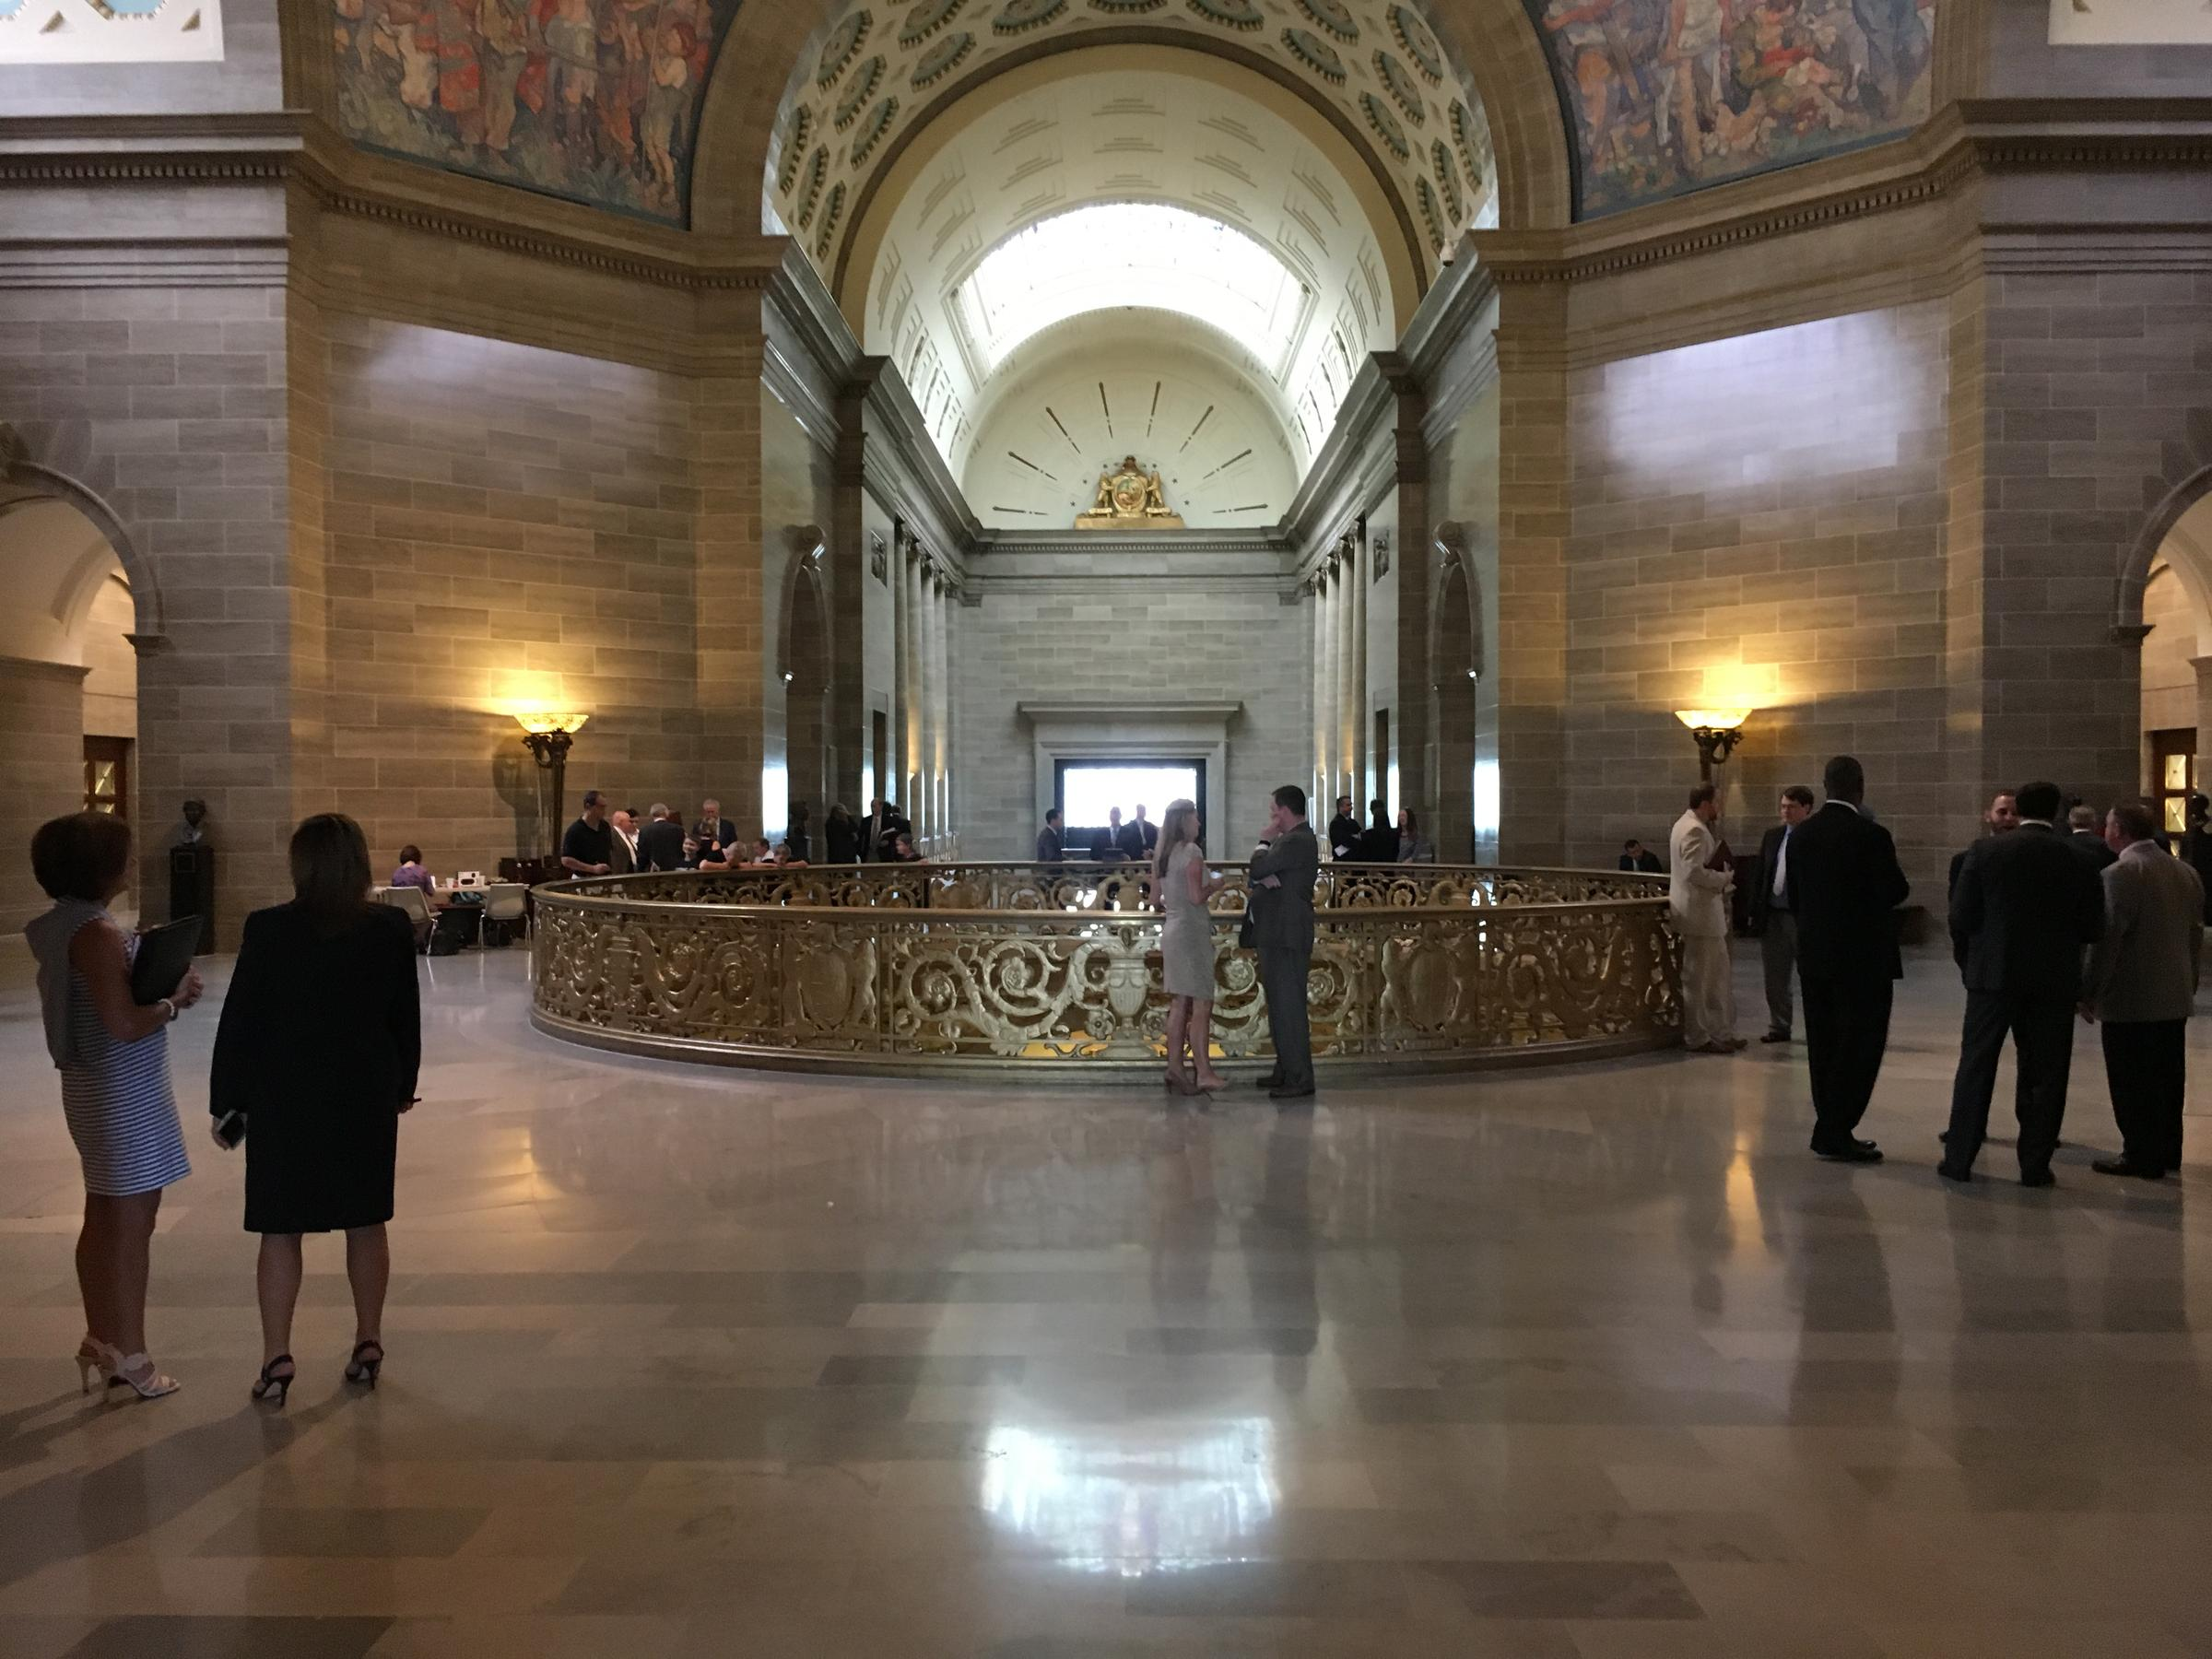 Greitens' defense team asks for judge instead of jury trial